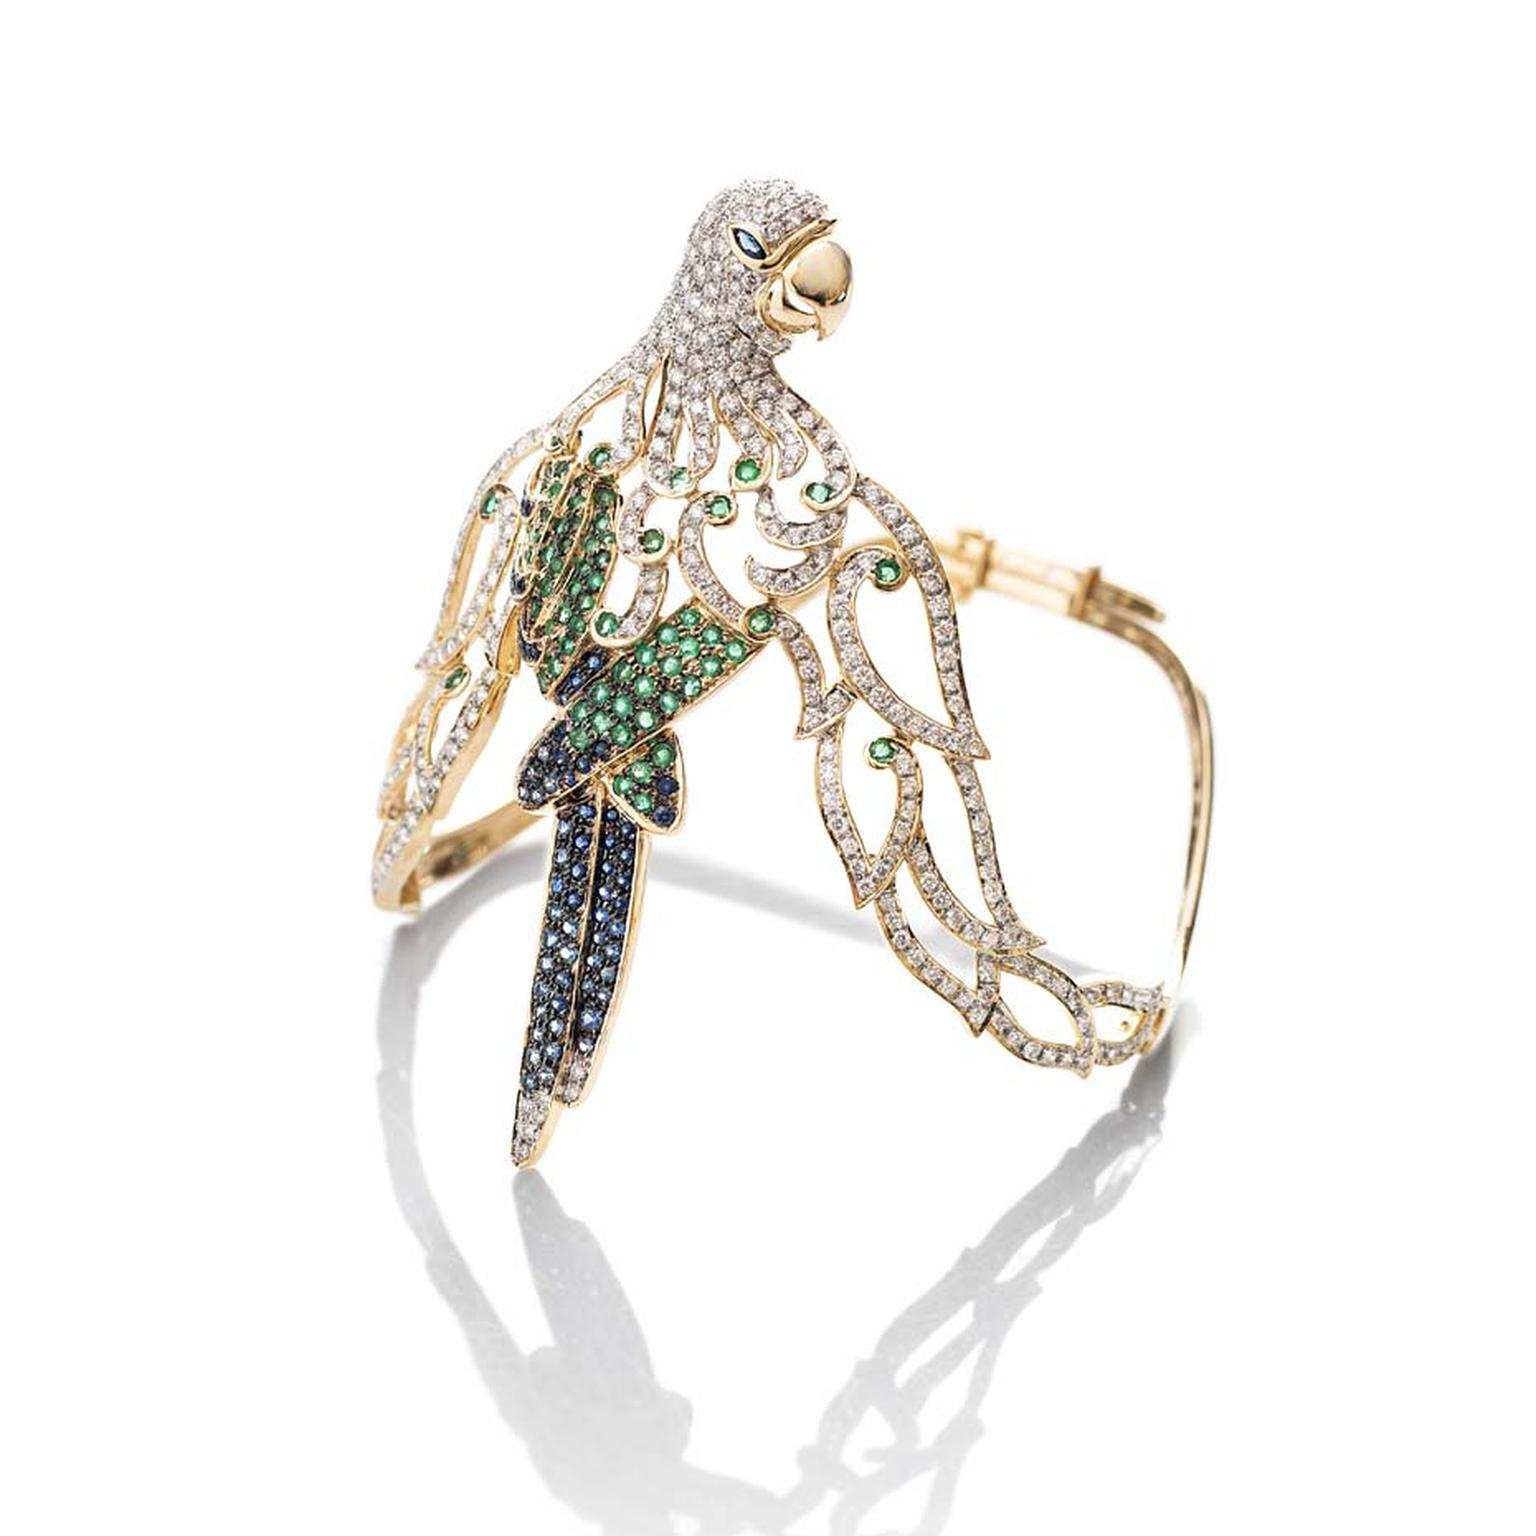 Fahra Khan_Le Jardin Exotique_An elegant parrot armlet in 18ct yellow gold with emeralds, sapphires and diamonds by Farah Khan jewellery.jpg